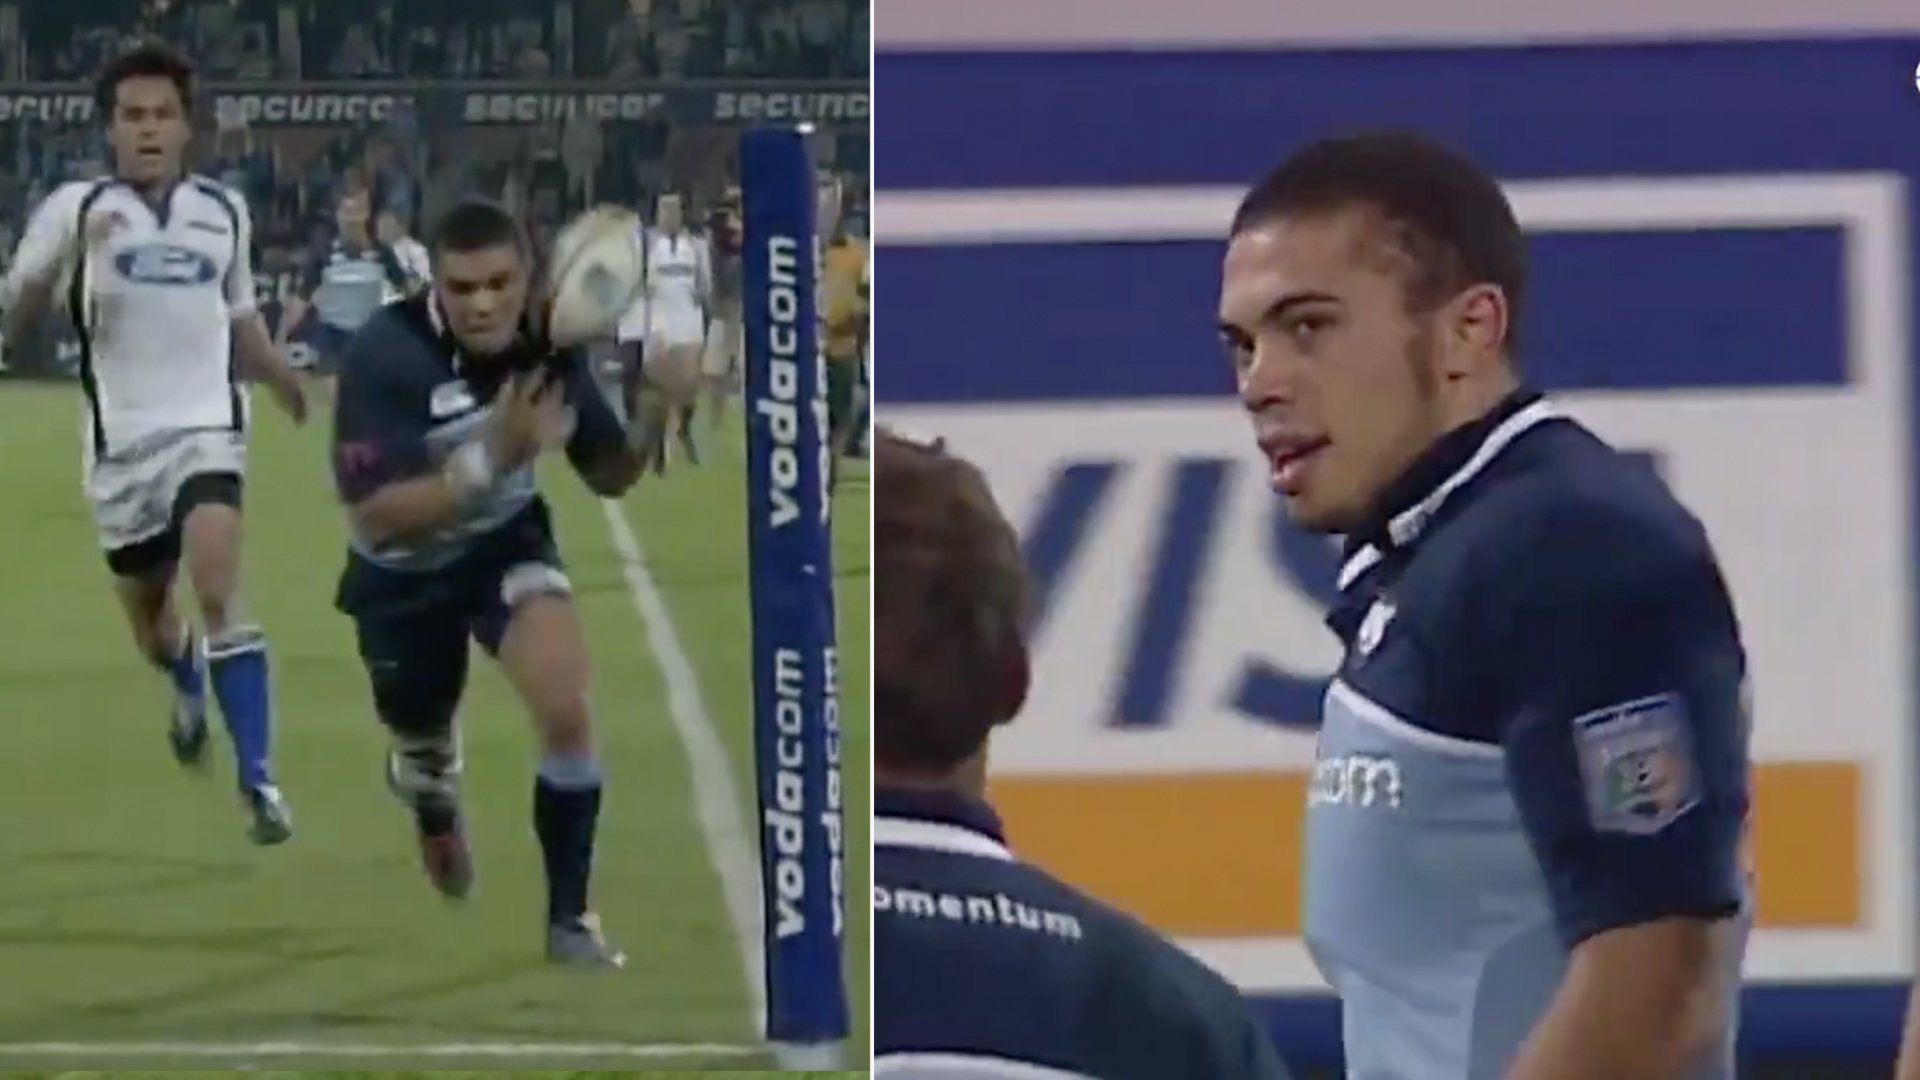 New footage has been released of the Bryan Habana try where he ran faster than most 100m sprinters